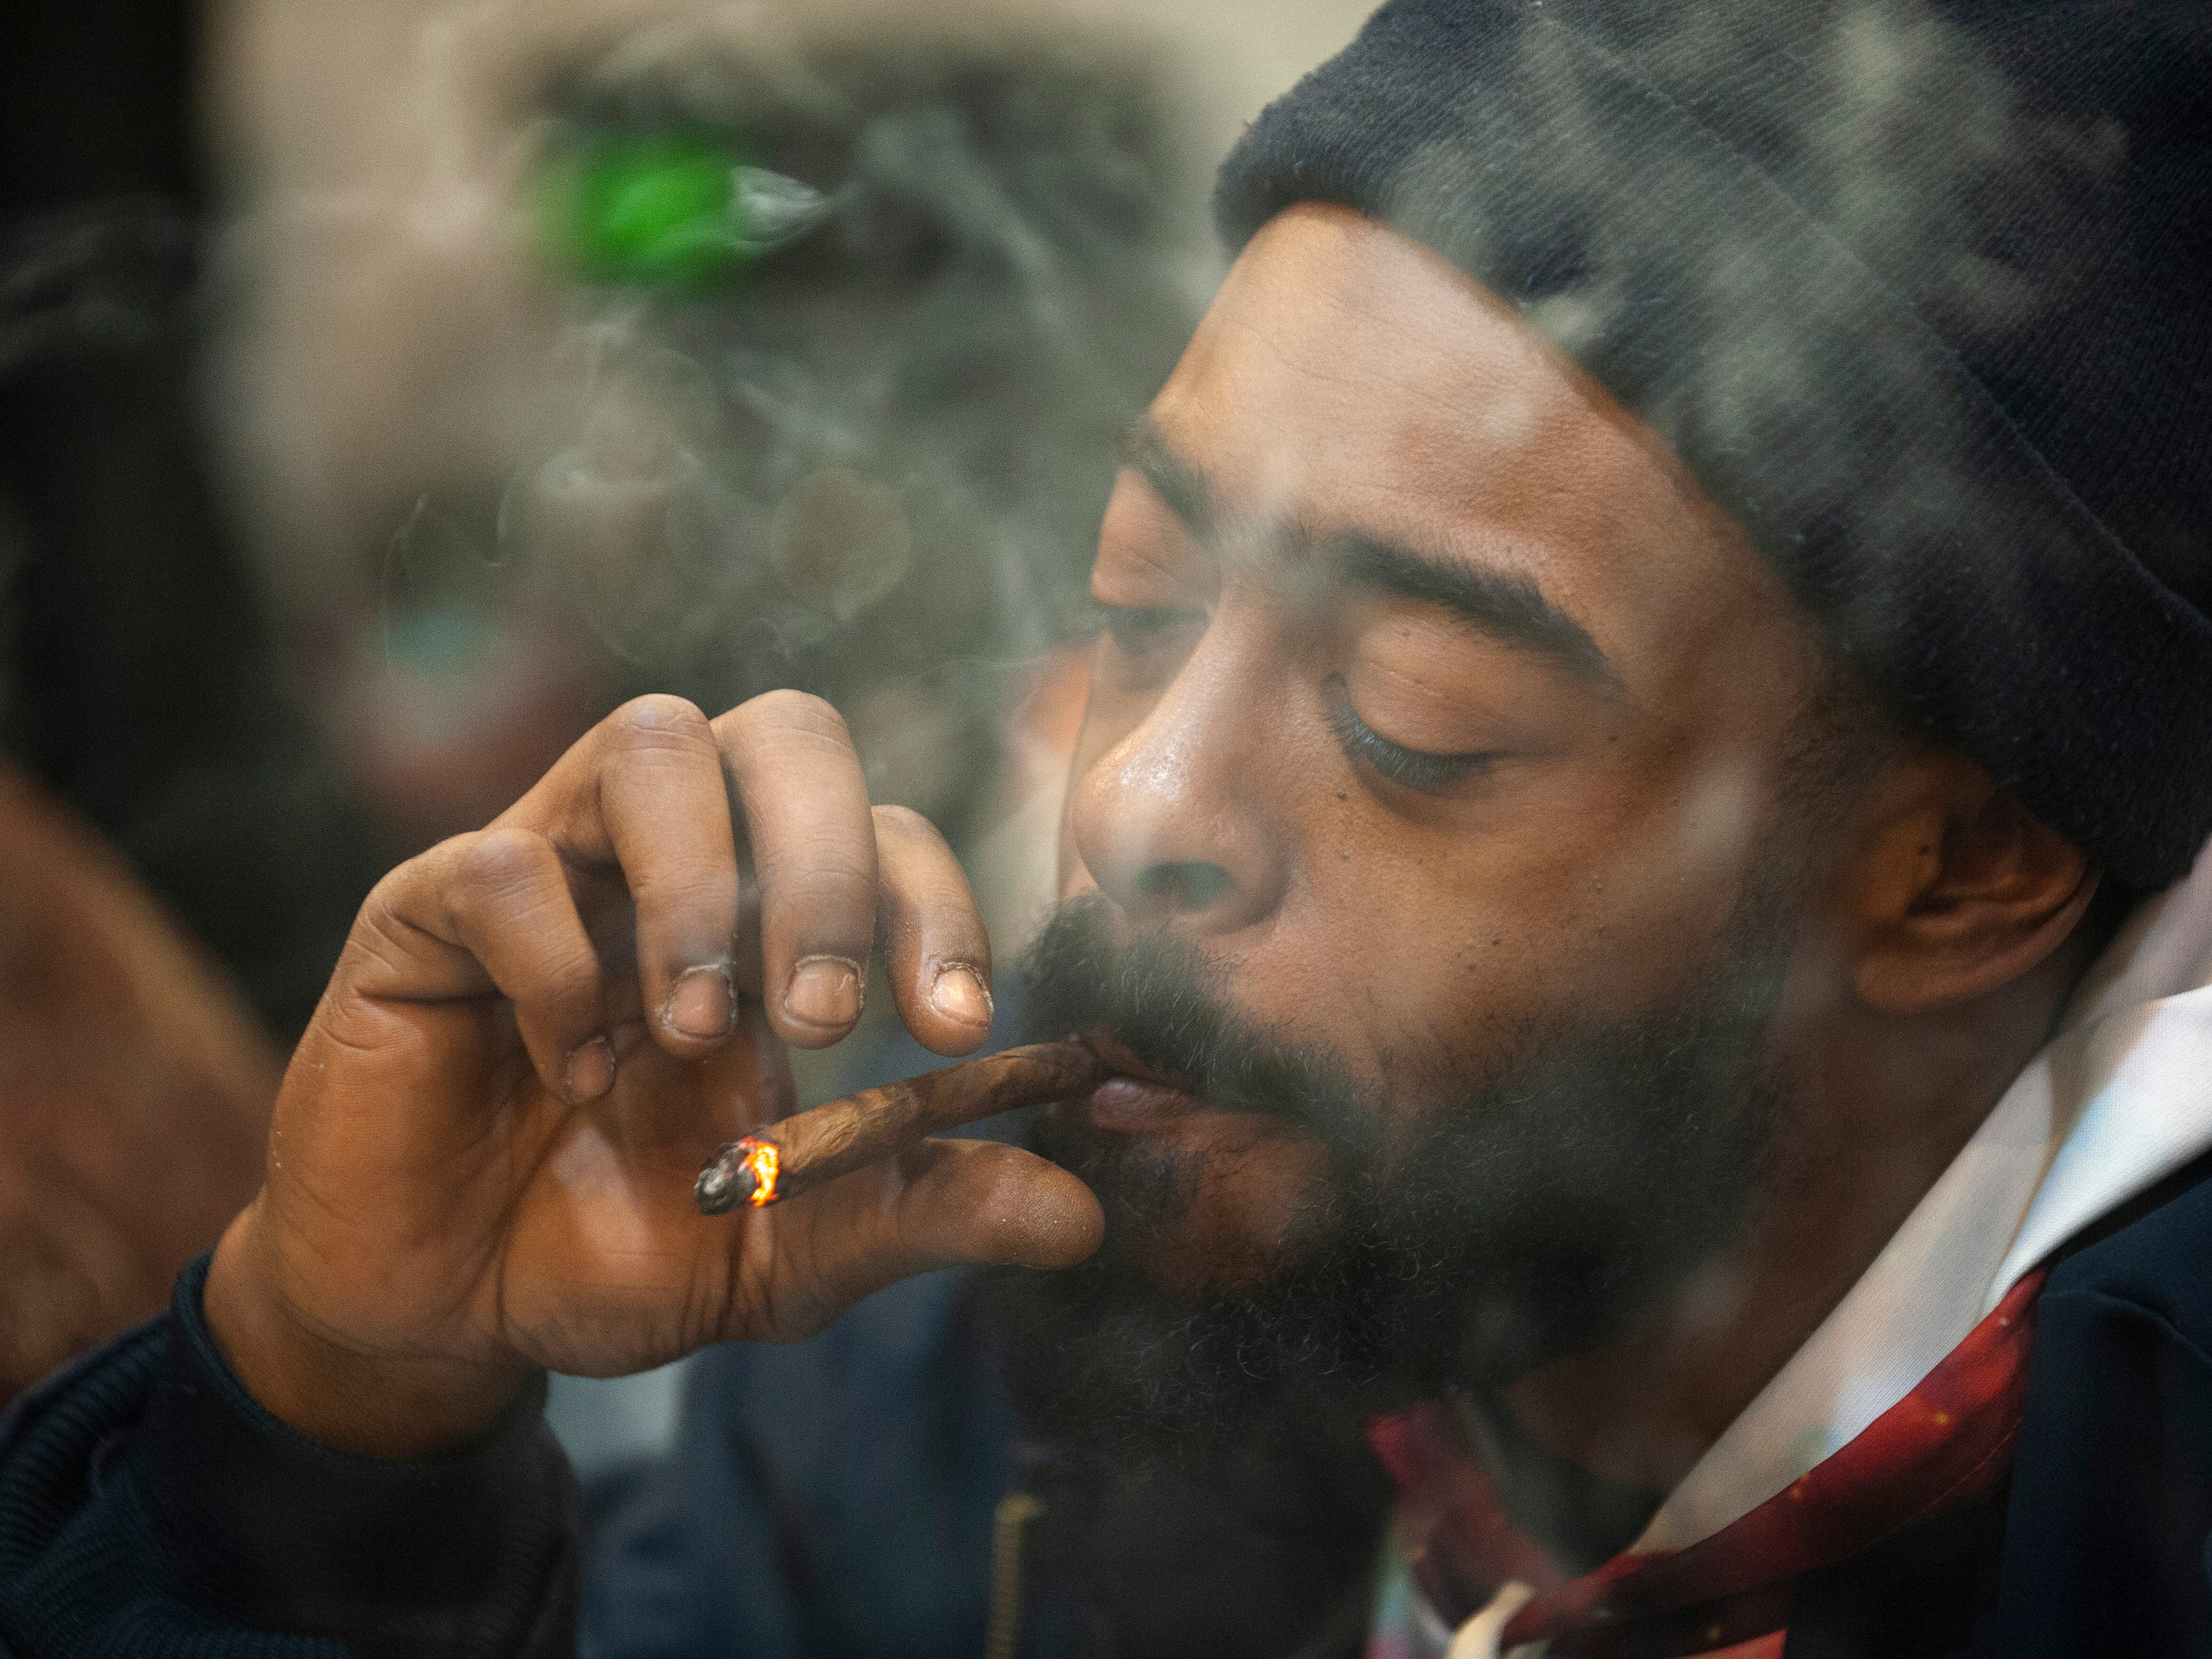 """Corey Faison of Inkster puffs on a blunt, marijuana rolled up in a cigar wrap, during """"The Art of Cannabis"""" event at the Cannabis Counsel in Detroit."""